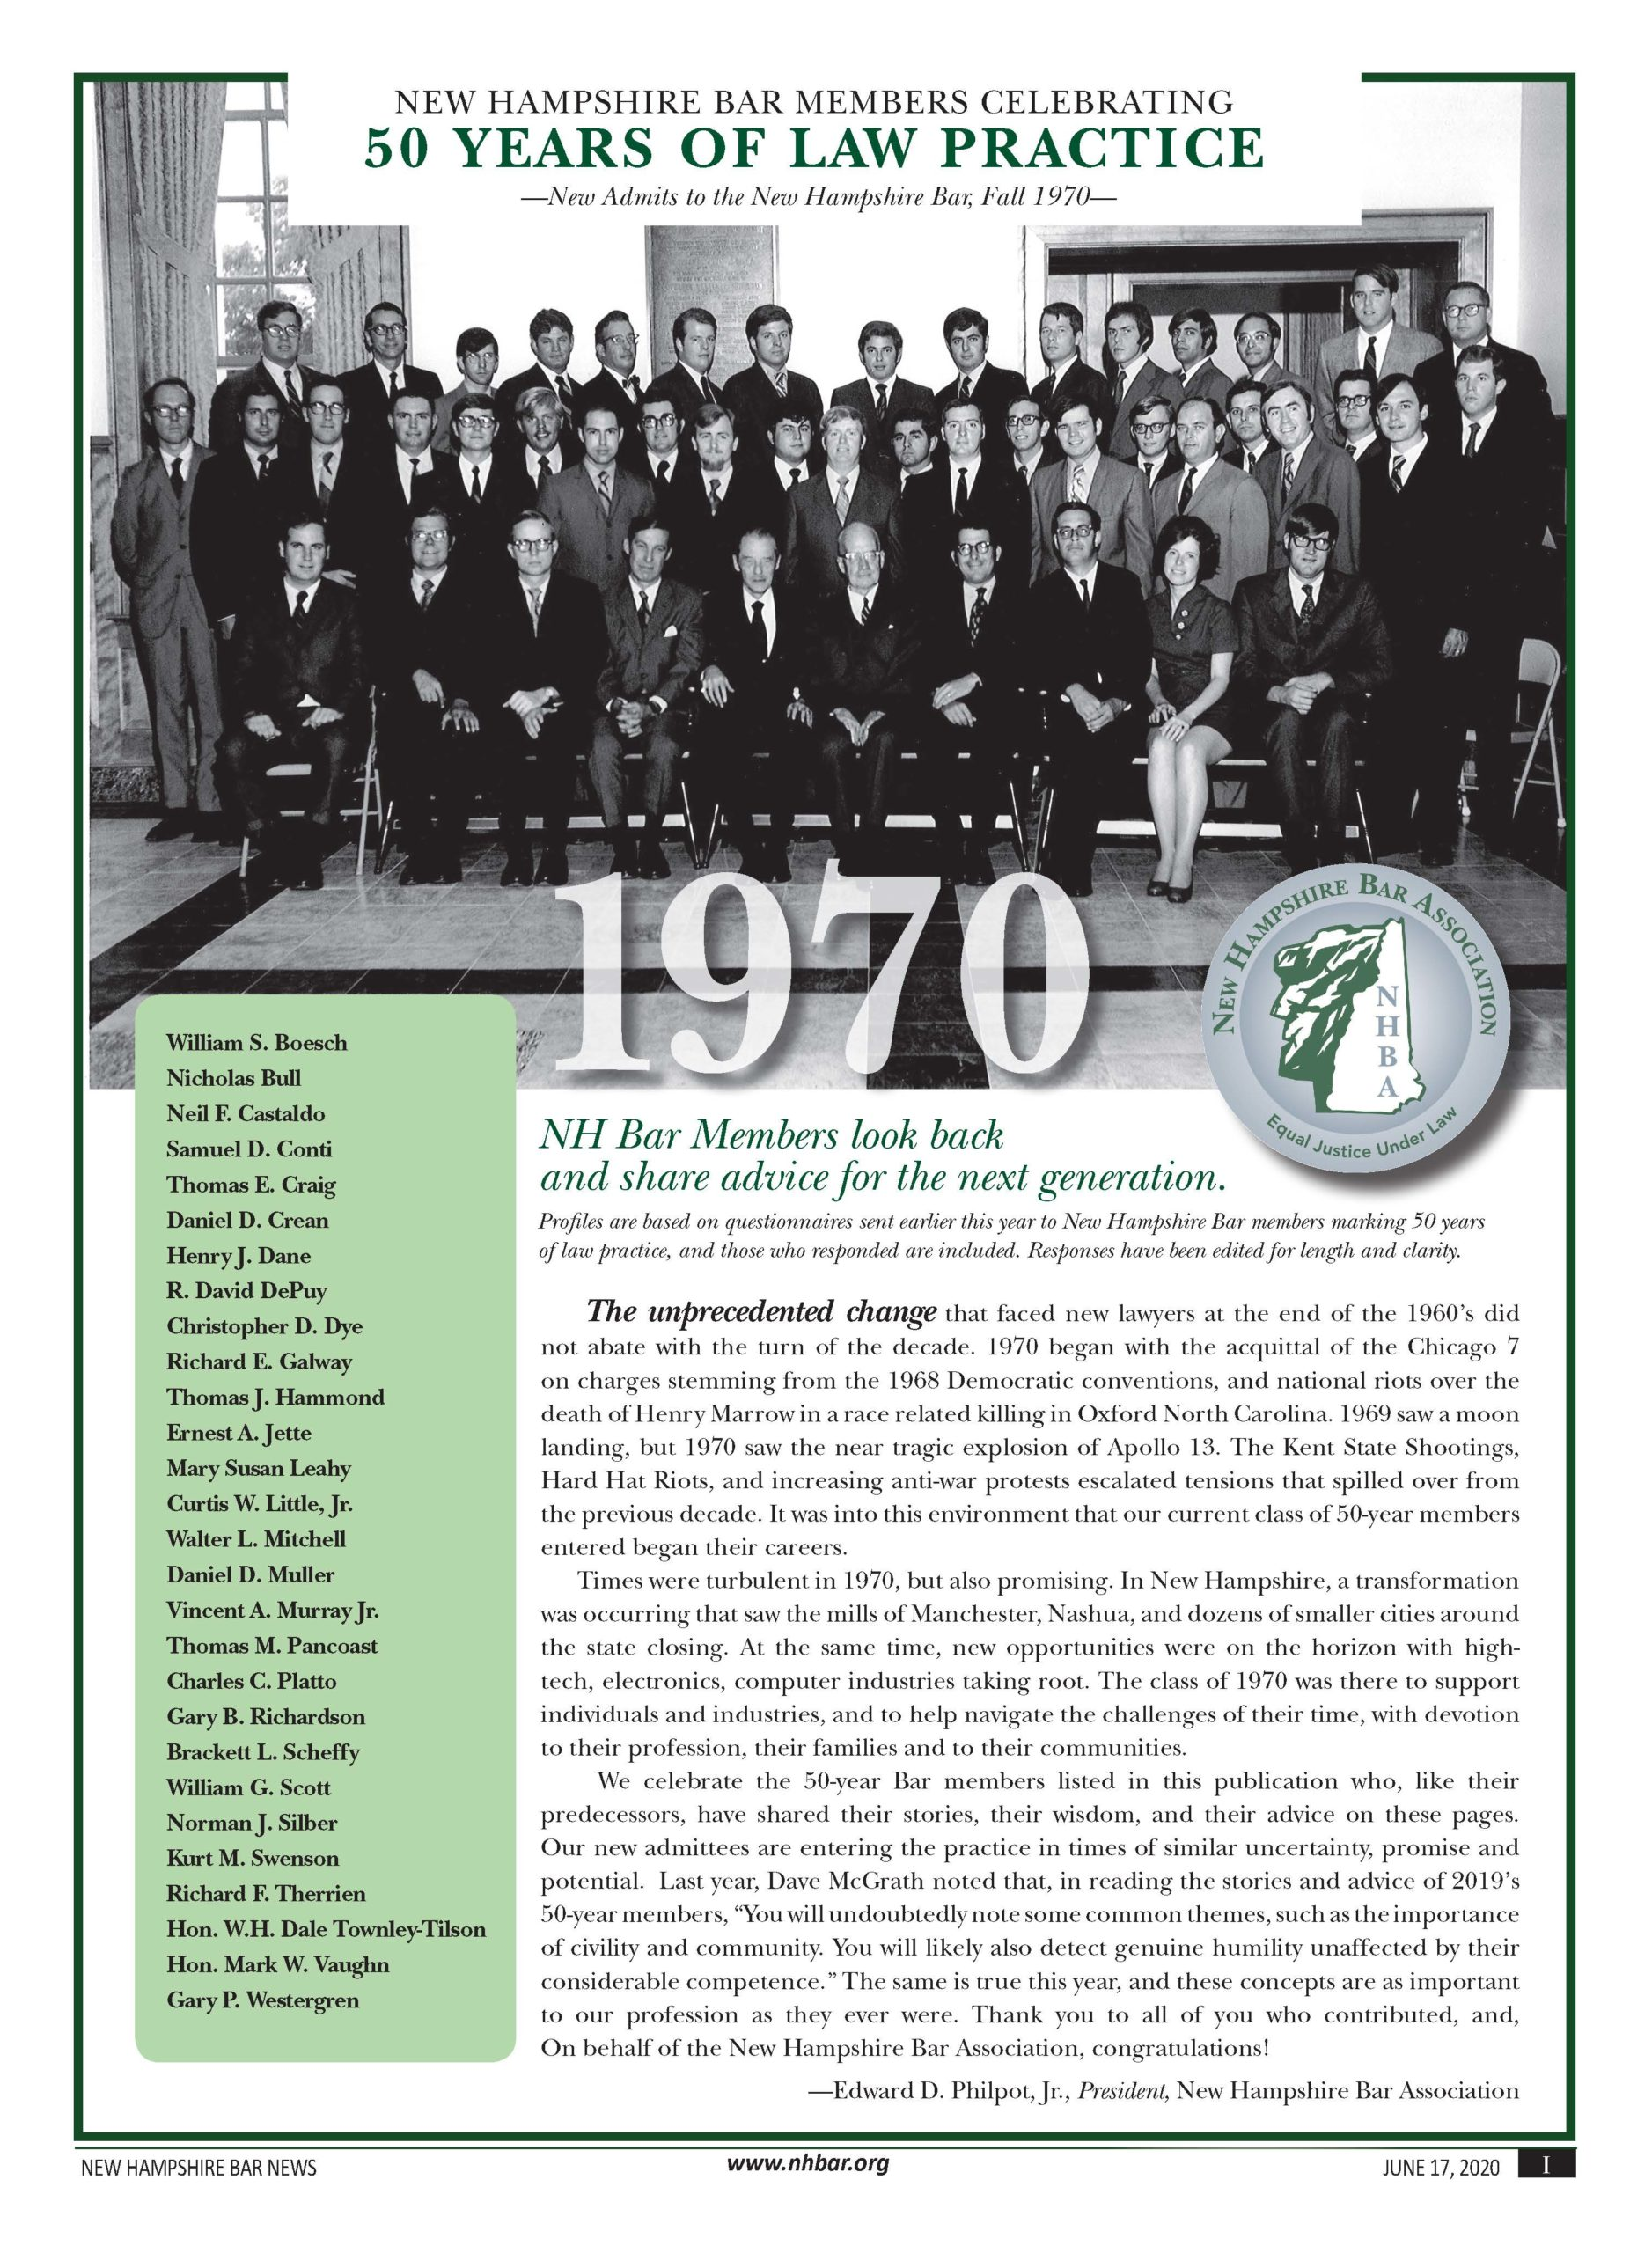 50 Years of Practice – Class of 1970